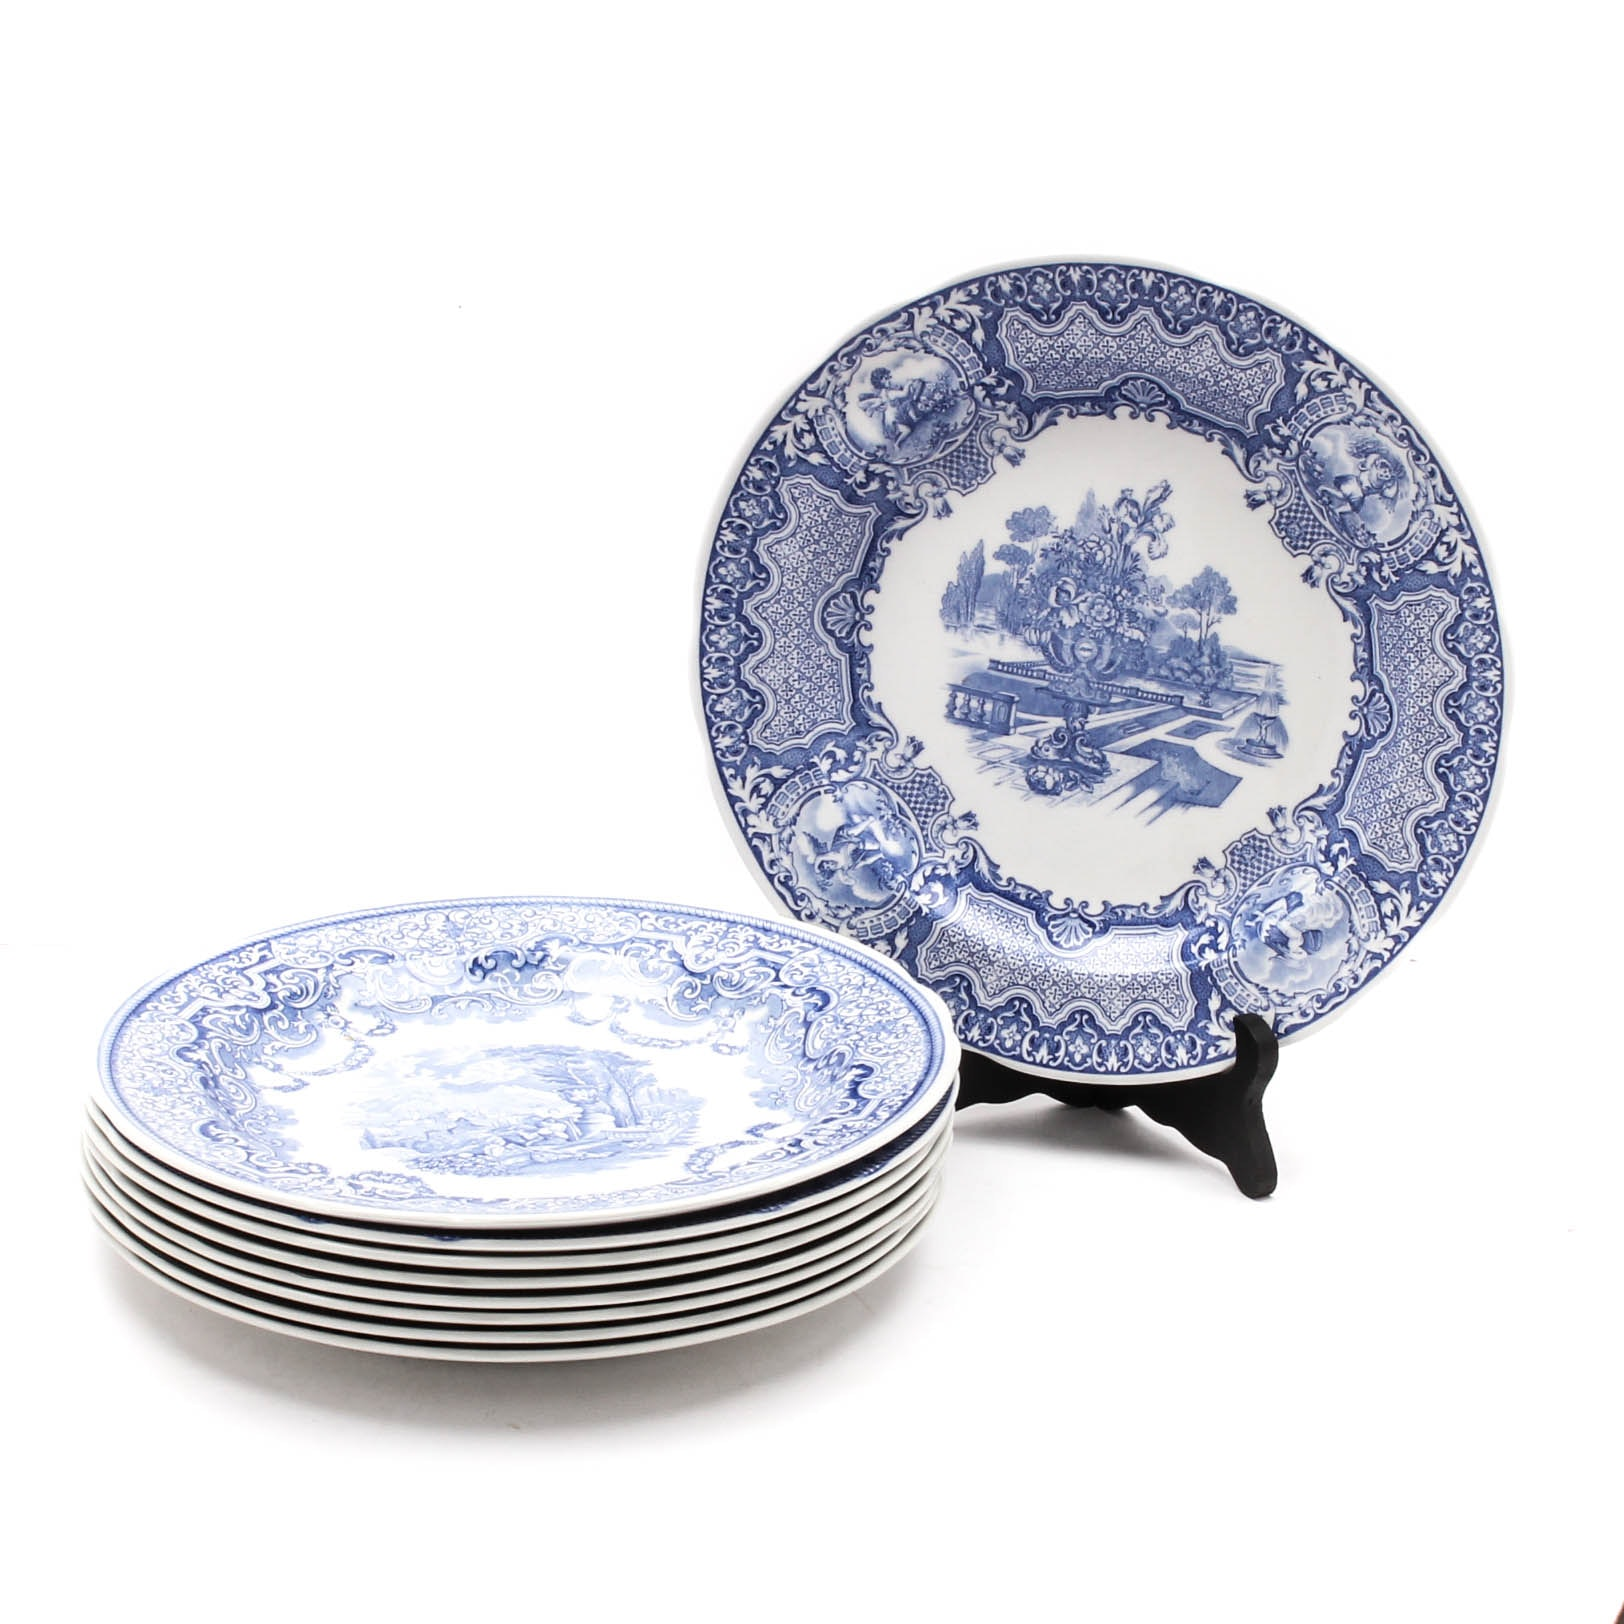 """Spode """"The Blue Room"""" and """"Archive Collection"""" Porcelain Plates"""